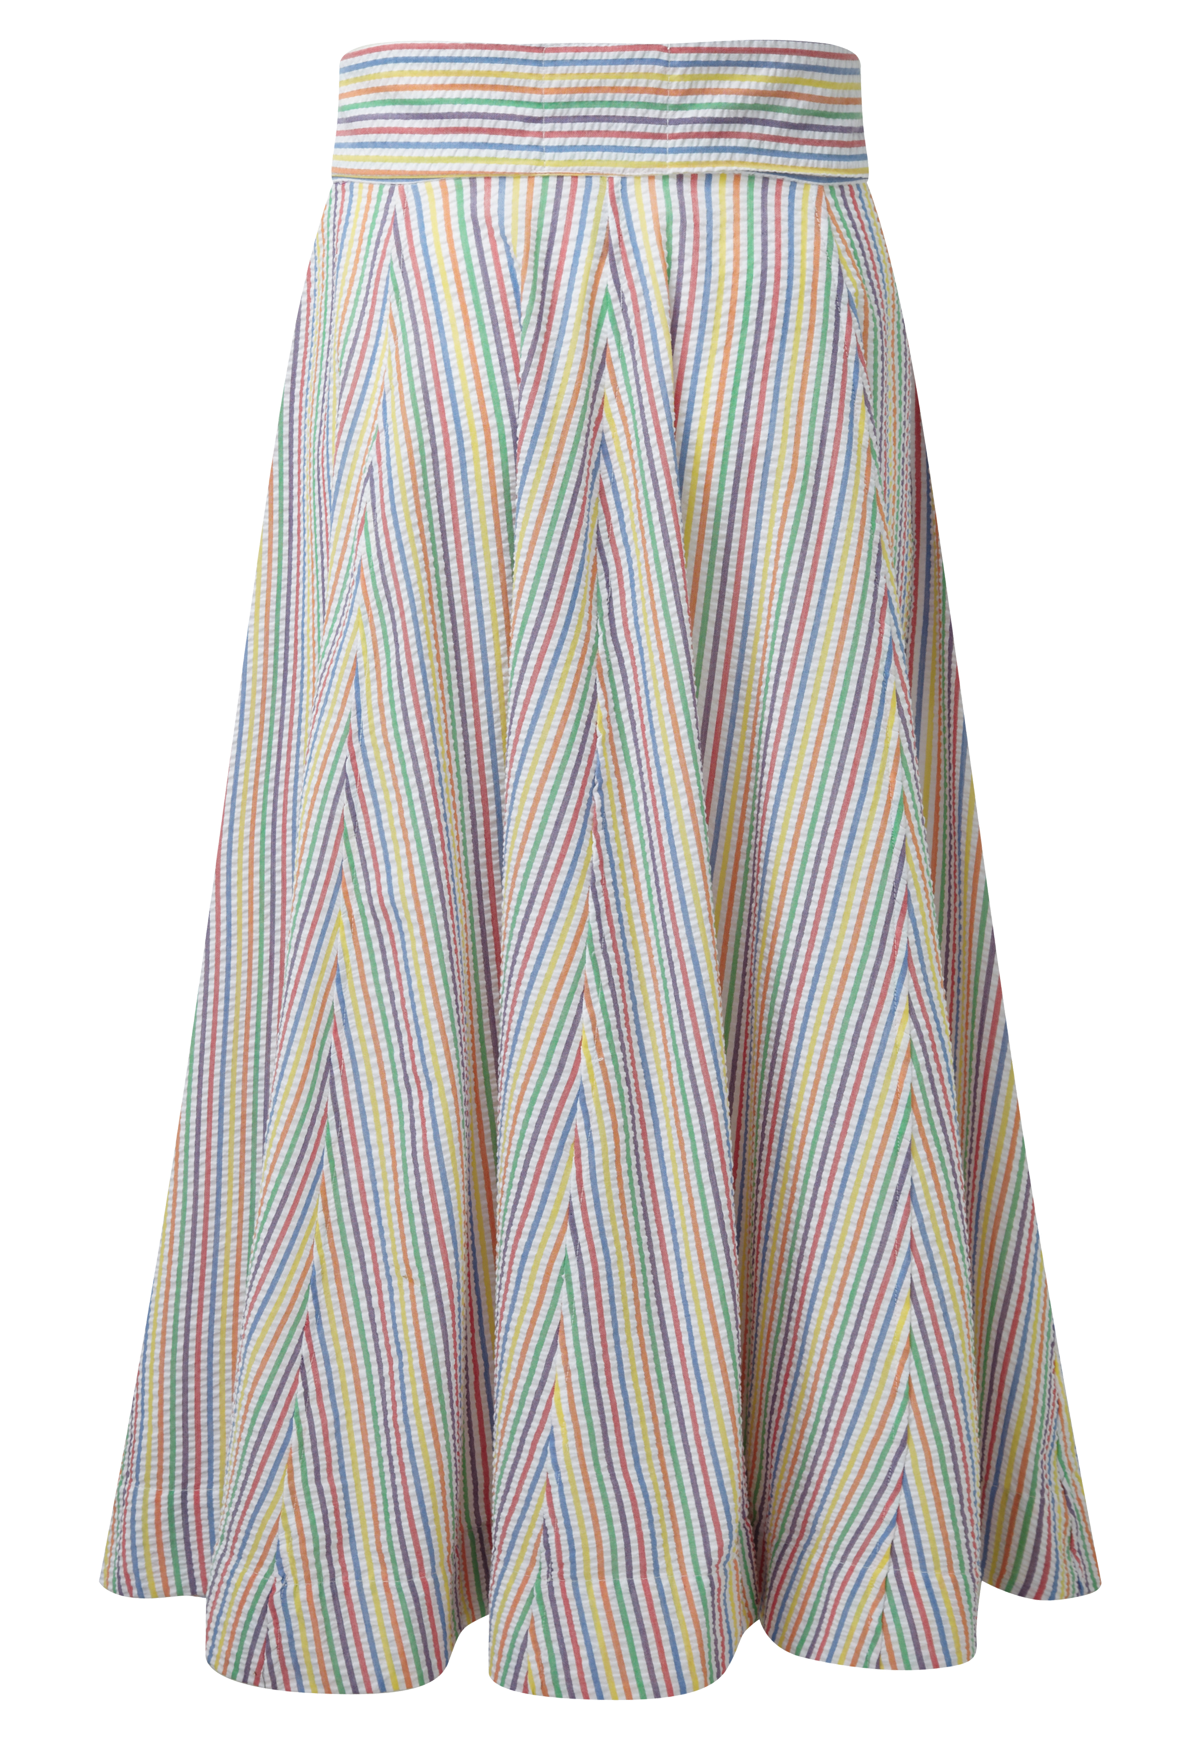 SEERSUCKER BEACH SKIRT